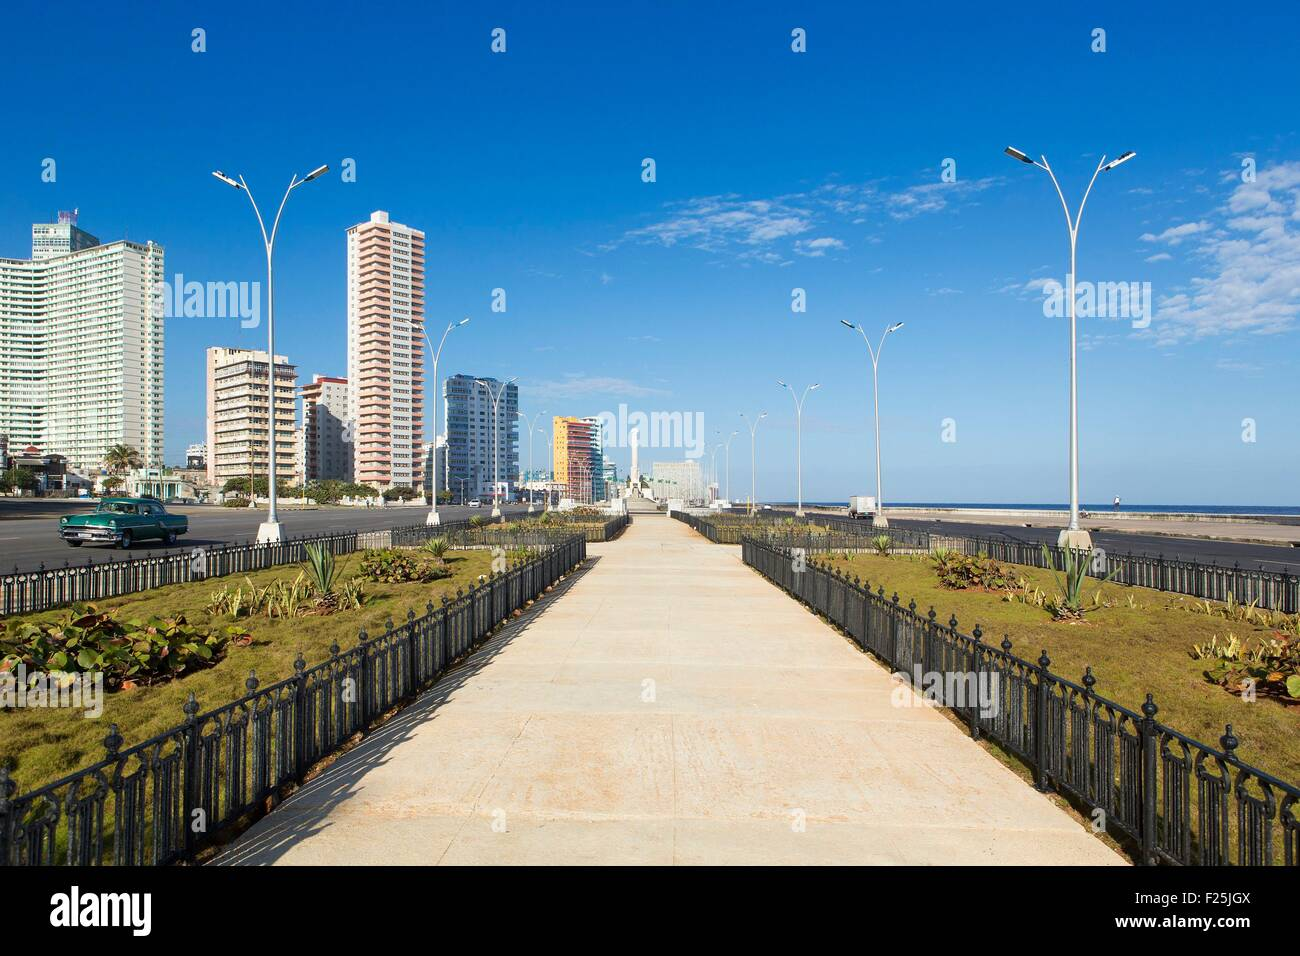 Cuba, Ciudad de la Habana province, La Havana, Vedado district, 1950's buildings and Malecon - Stock Image